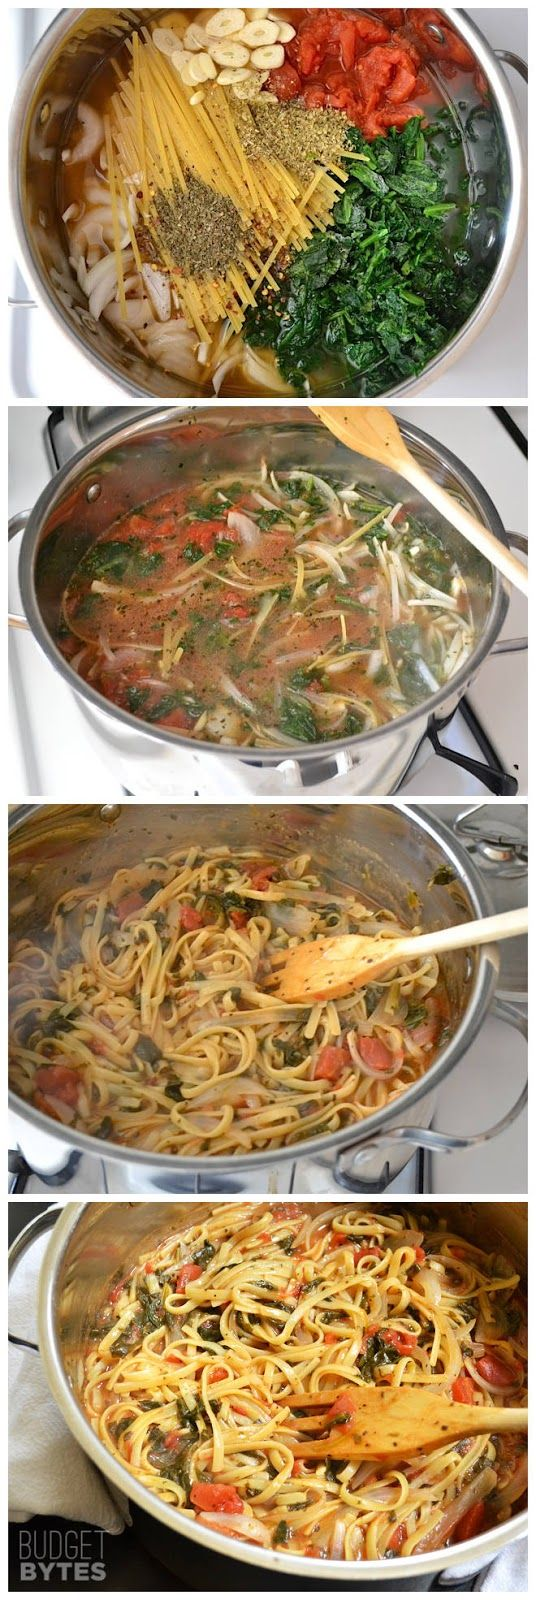 This dish is incredibly easy and super flavorful. The pasta cooks in a mixture of broth, herbs, and aromatics, like onion and garlic, which ...